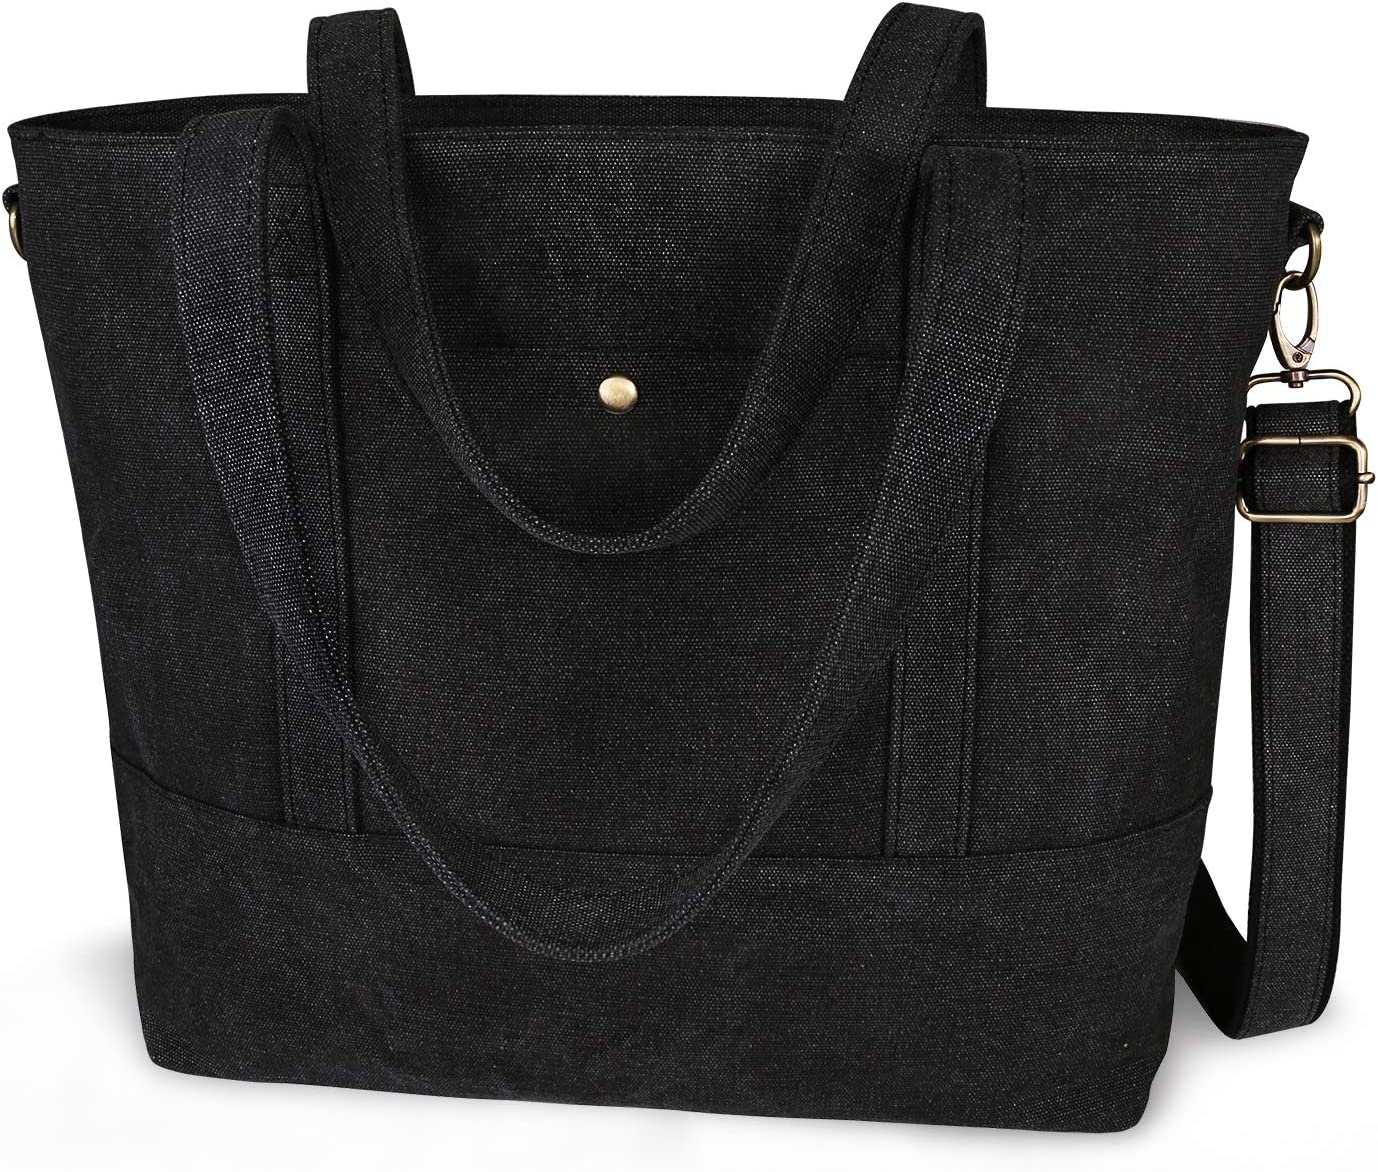 IDAILU Canvas Laptop Tote Bag for Women Fits 13 14 Inch Computer Large Capacity Work Travel Shoulder Handbag with Padding (Black)